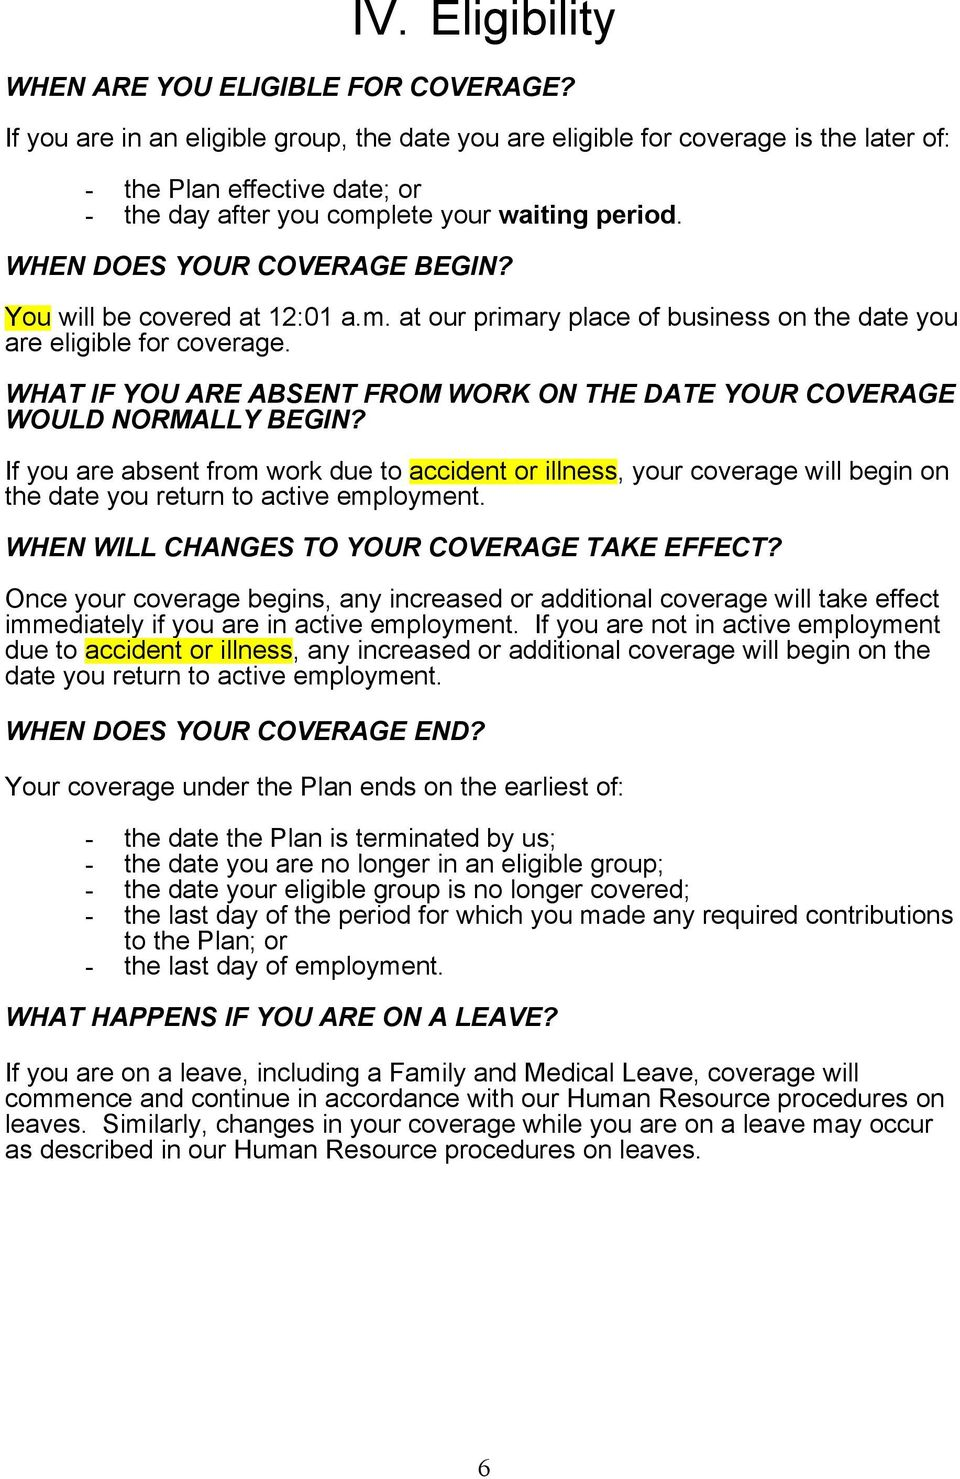 You will be covered at 12:01 a.m. at our primary place of business on the date you are eligible for coverage. WHAT IF YOU ARE ABSENT FROM WORK ON THE DATE YOUR COVERAGE WOULD NORMALLY BEGIN?